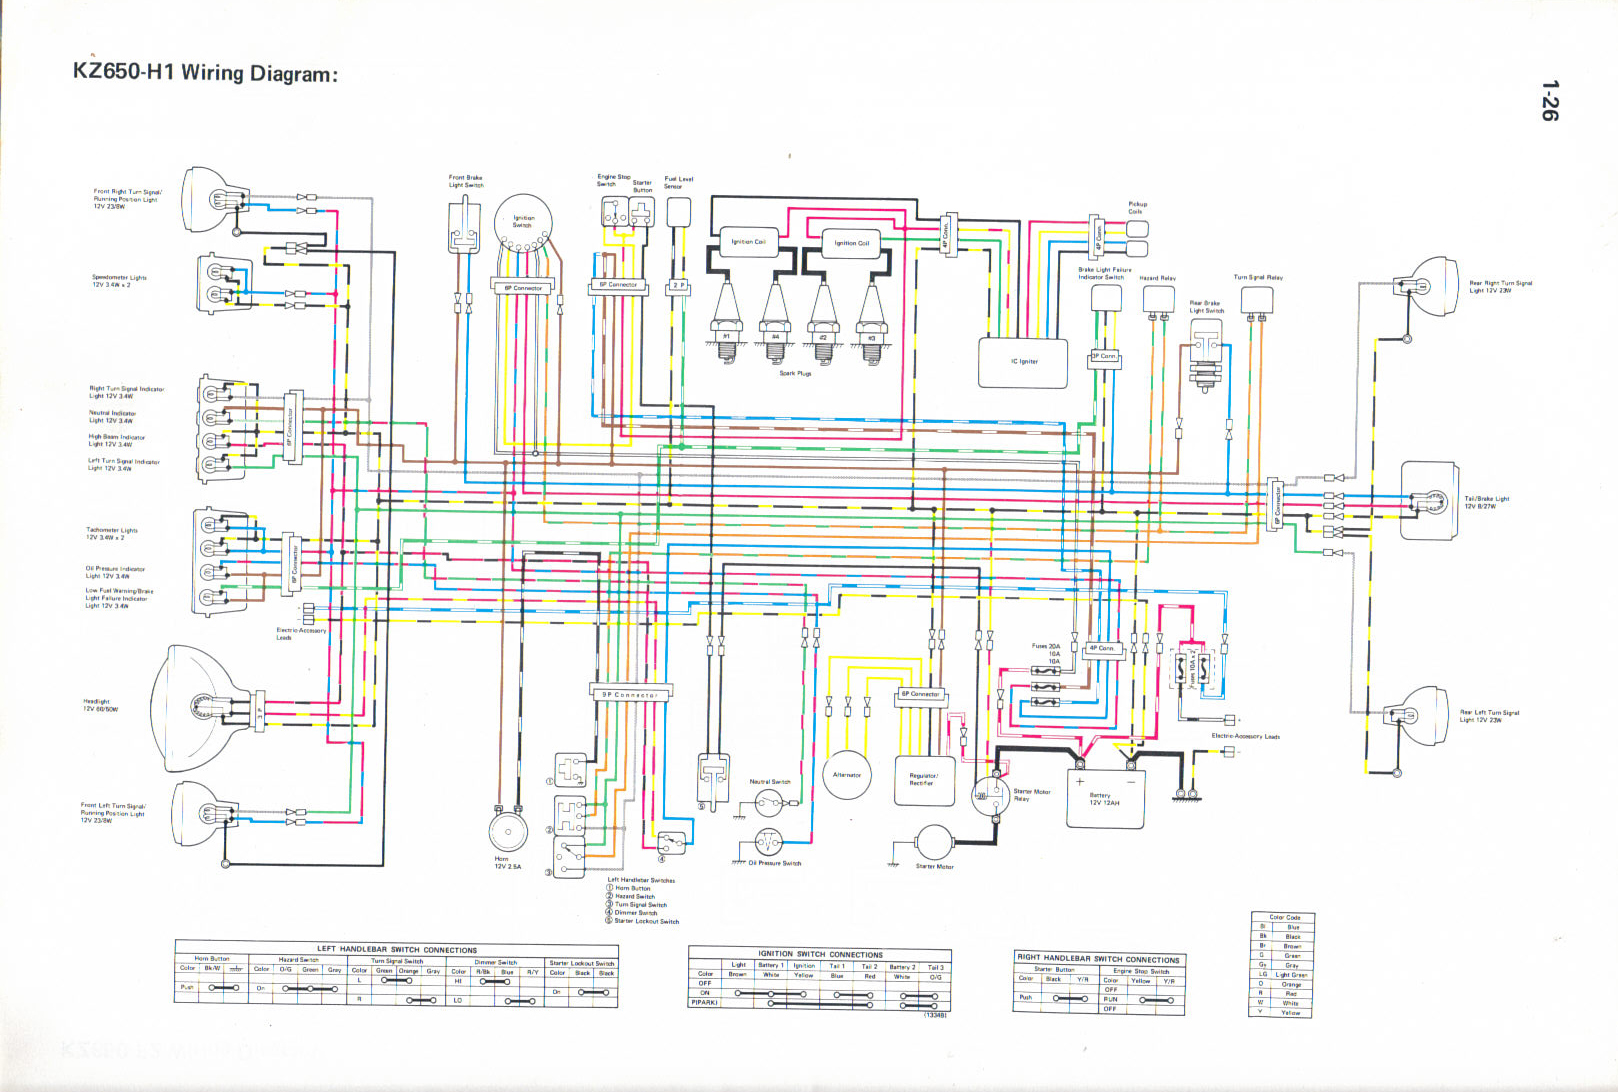 KZ650 H1 kz650 info wiring diagrams kawasaki prairie 300 wiring diagram at bayanpartner.co